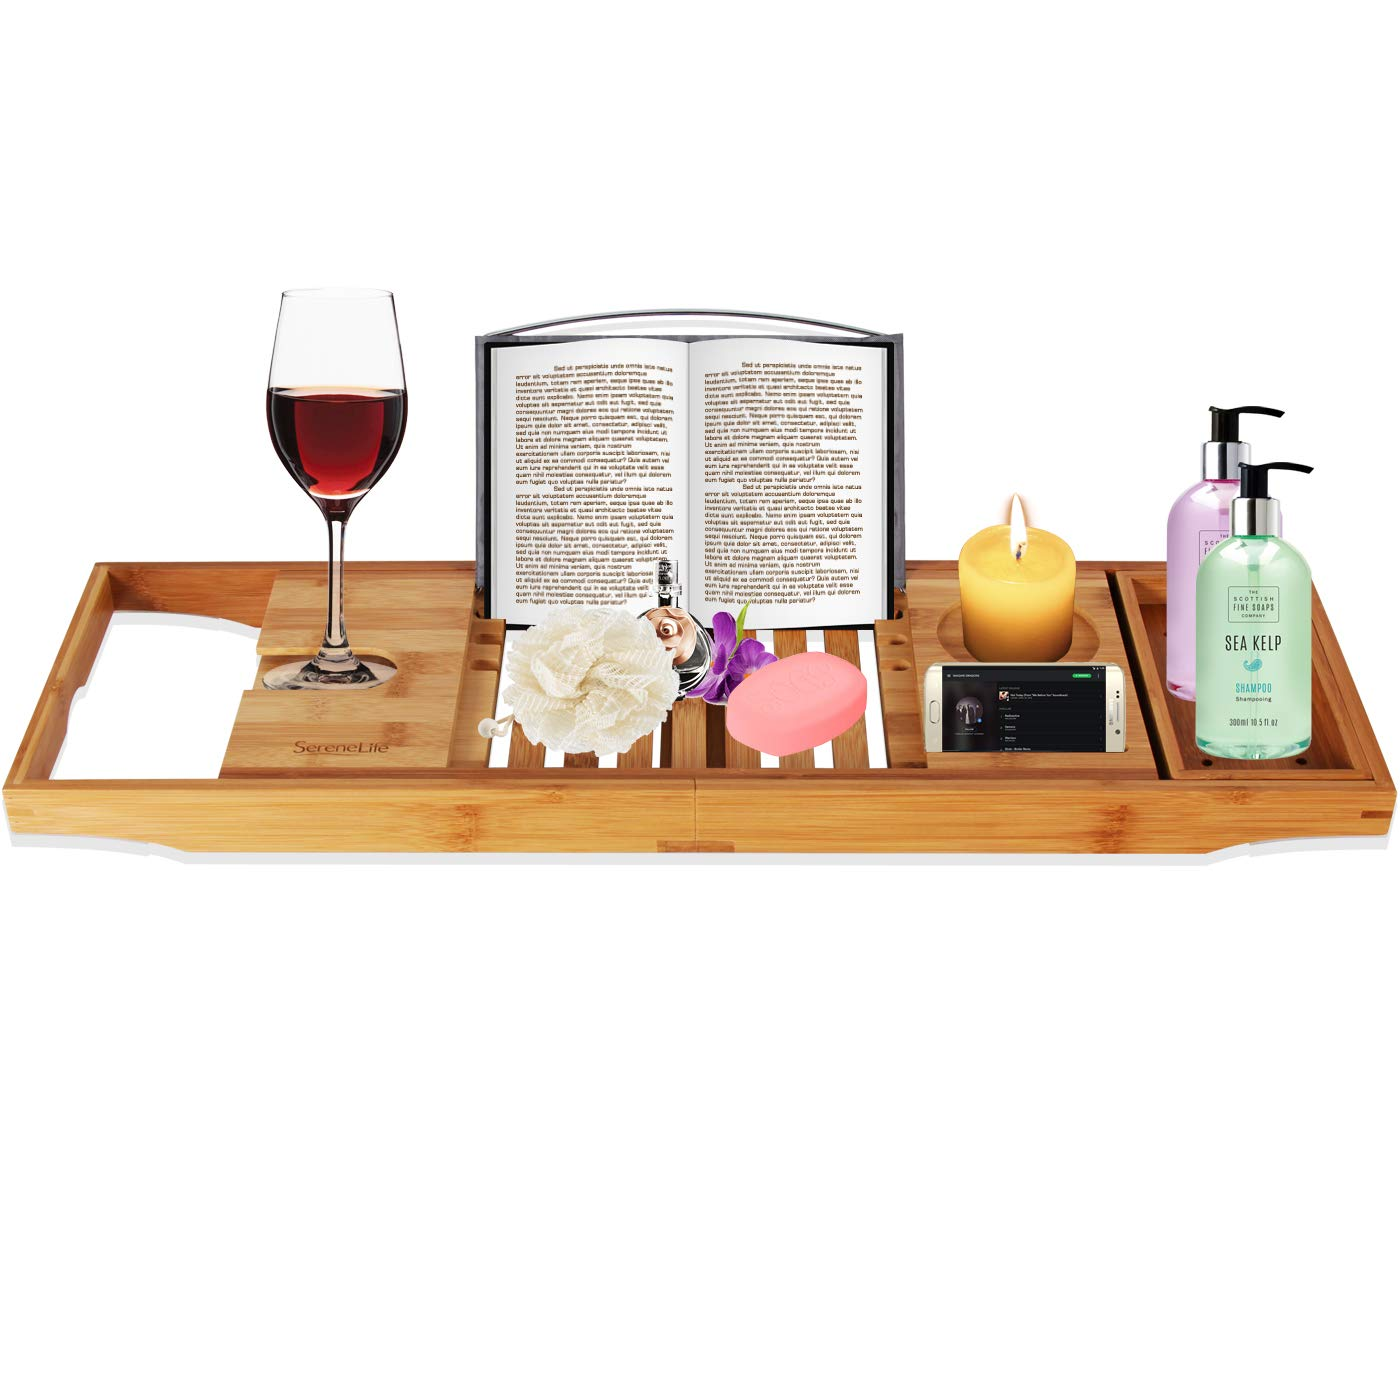 Luxury Bamboo Bathtub Caddy Tray - Adjustable Natural Wood Bath Tub Organizer with Wine Holder, Cup Placement, Soap Dish, Book Space & Phone Slot for Spa, Bathroom & Shower - SereneLife SLBCAD20 Sound Around